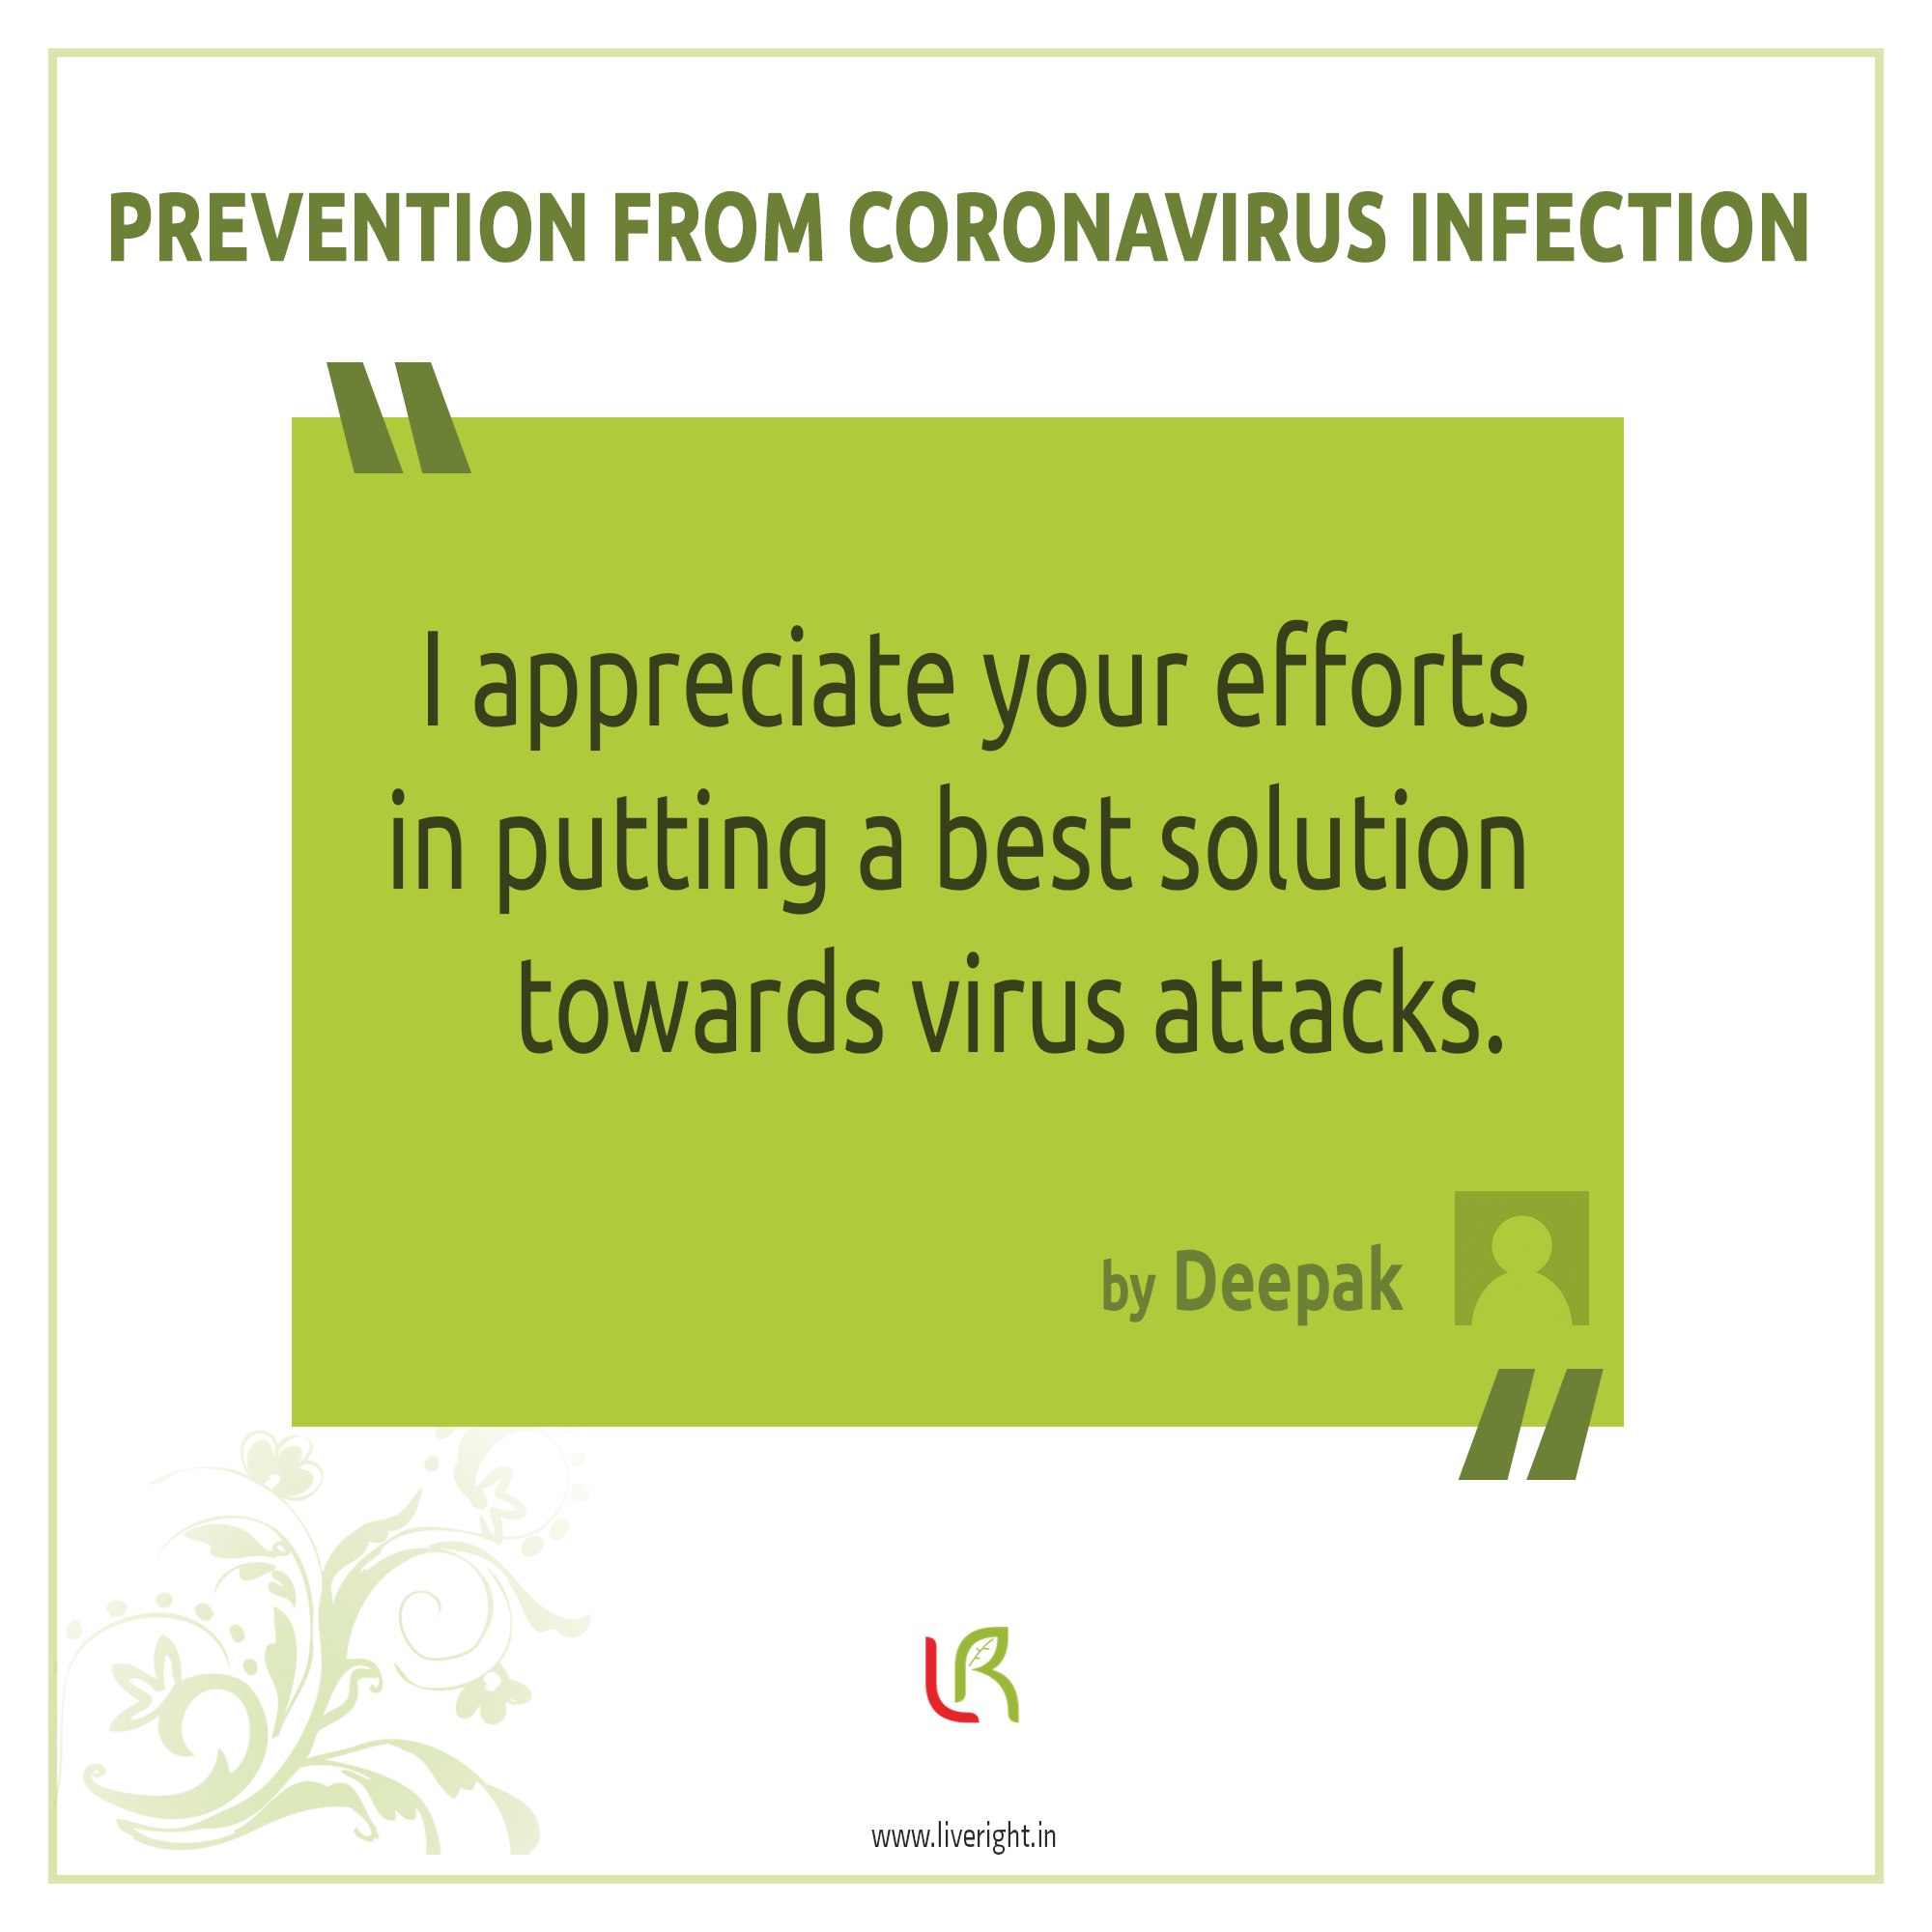 Prevention from coronavirus infection.